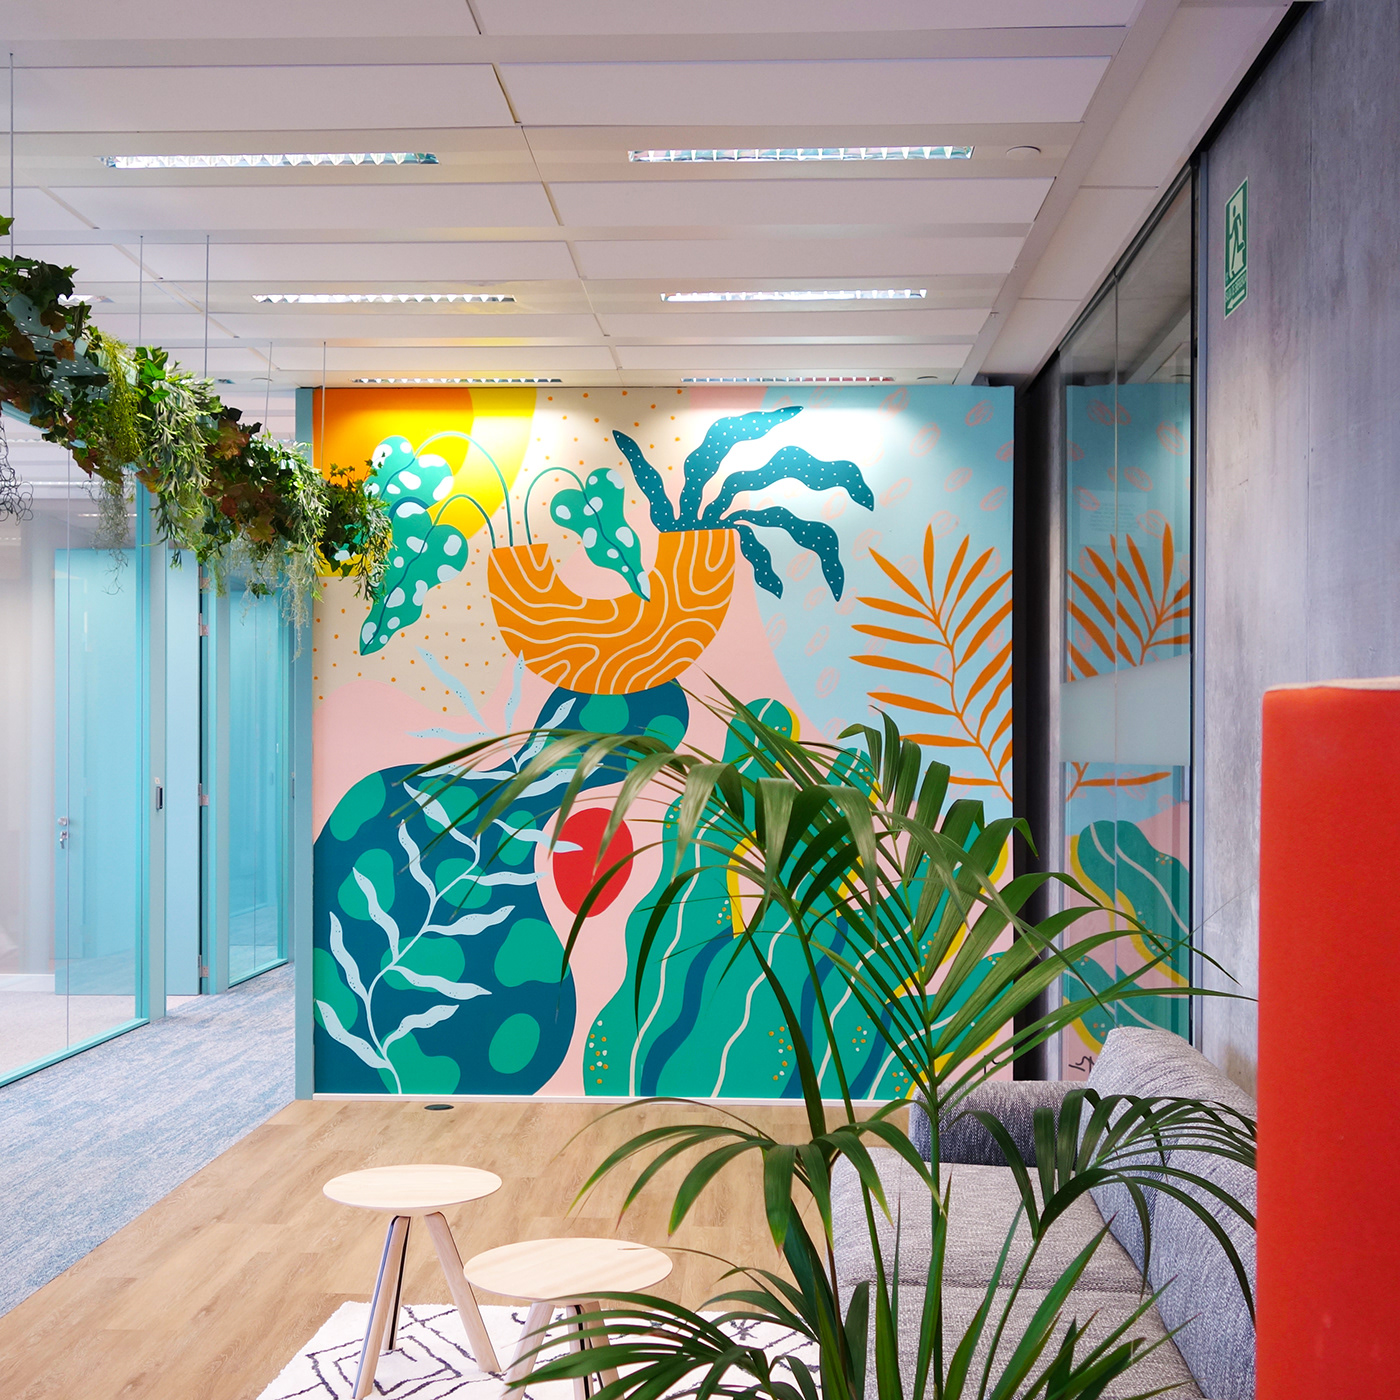 architecture barcelona coworking decoration Interior interior design  Mural Office painting   pattern